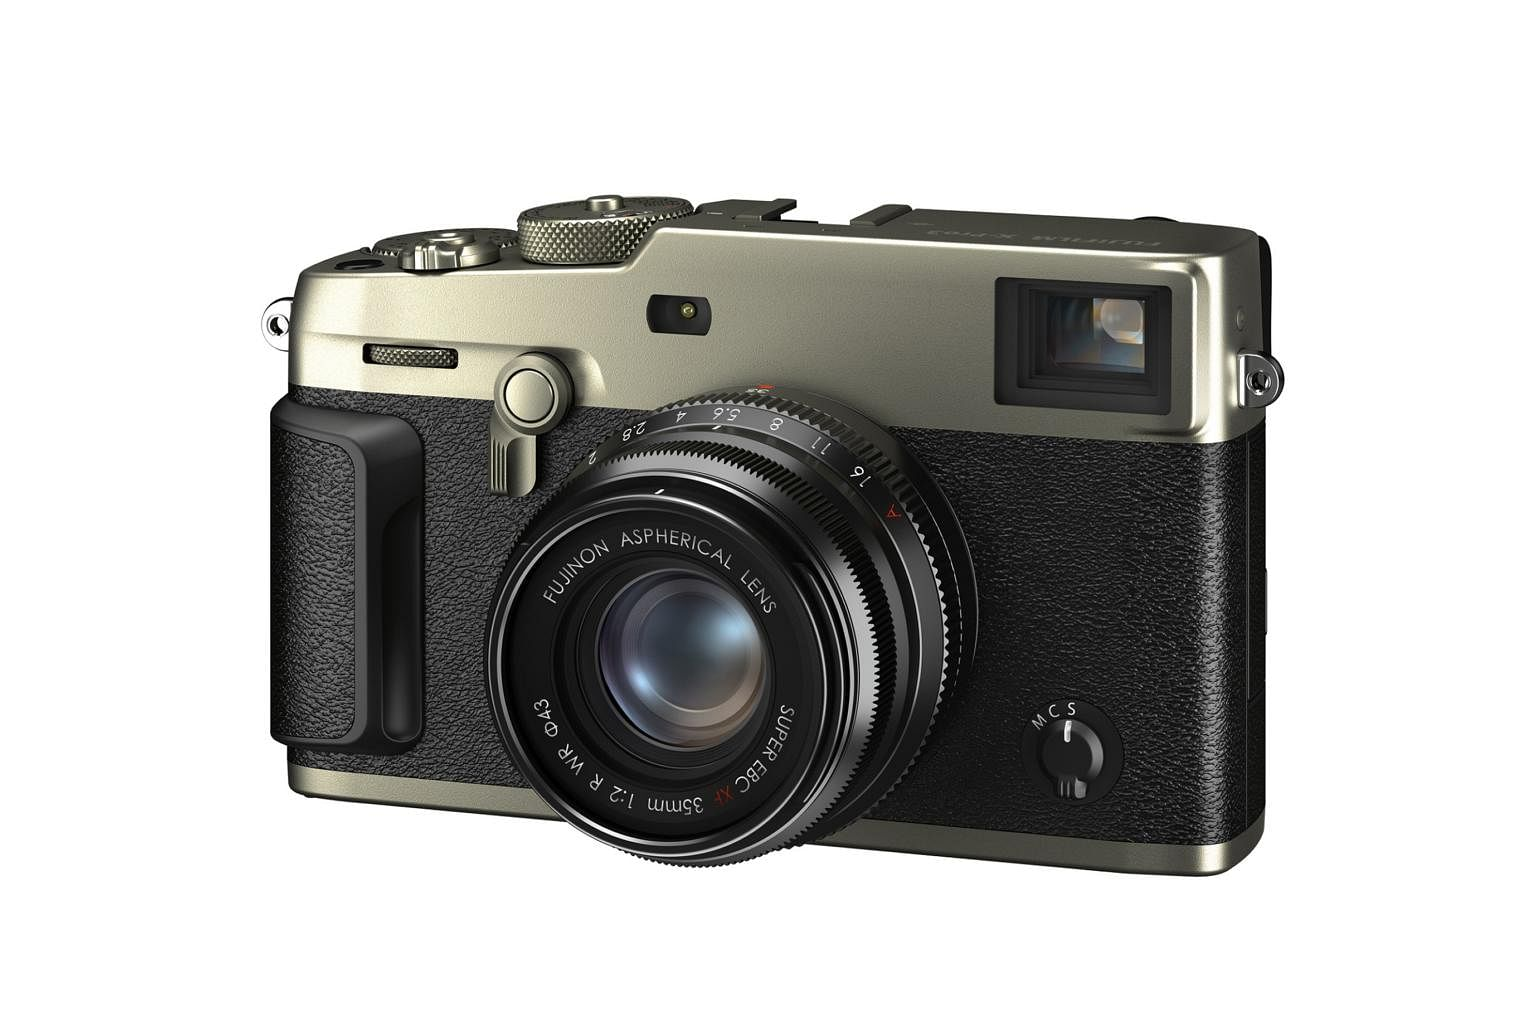 Tech Review Fujifilm X Pro3 Camera Has Touch Of Nostalgia Cameras News Top Stories The Straits Times